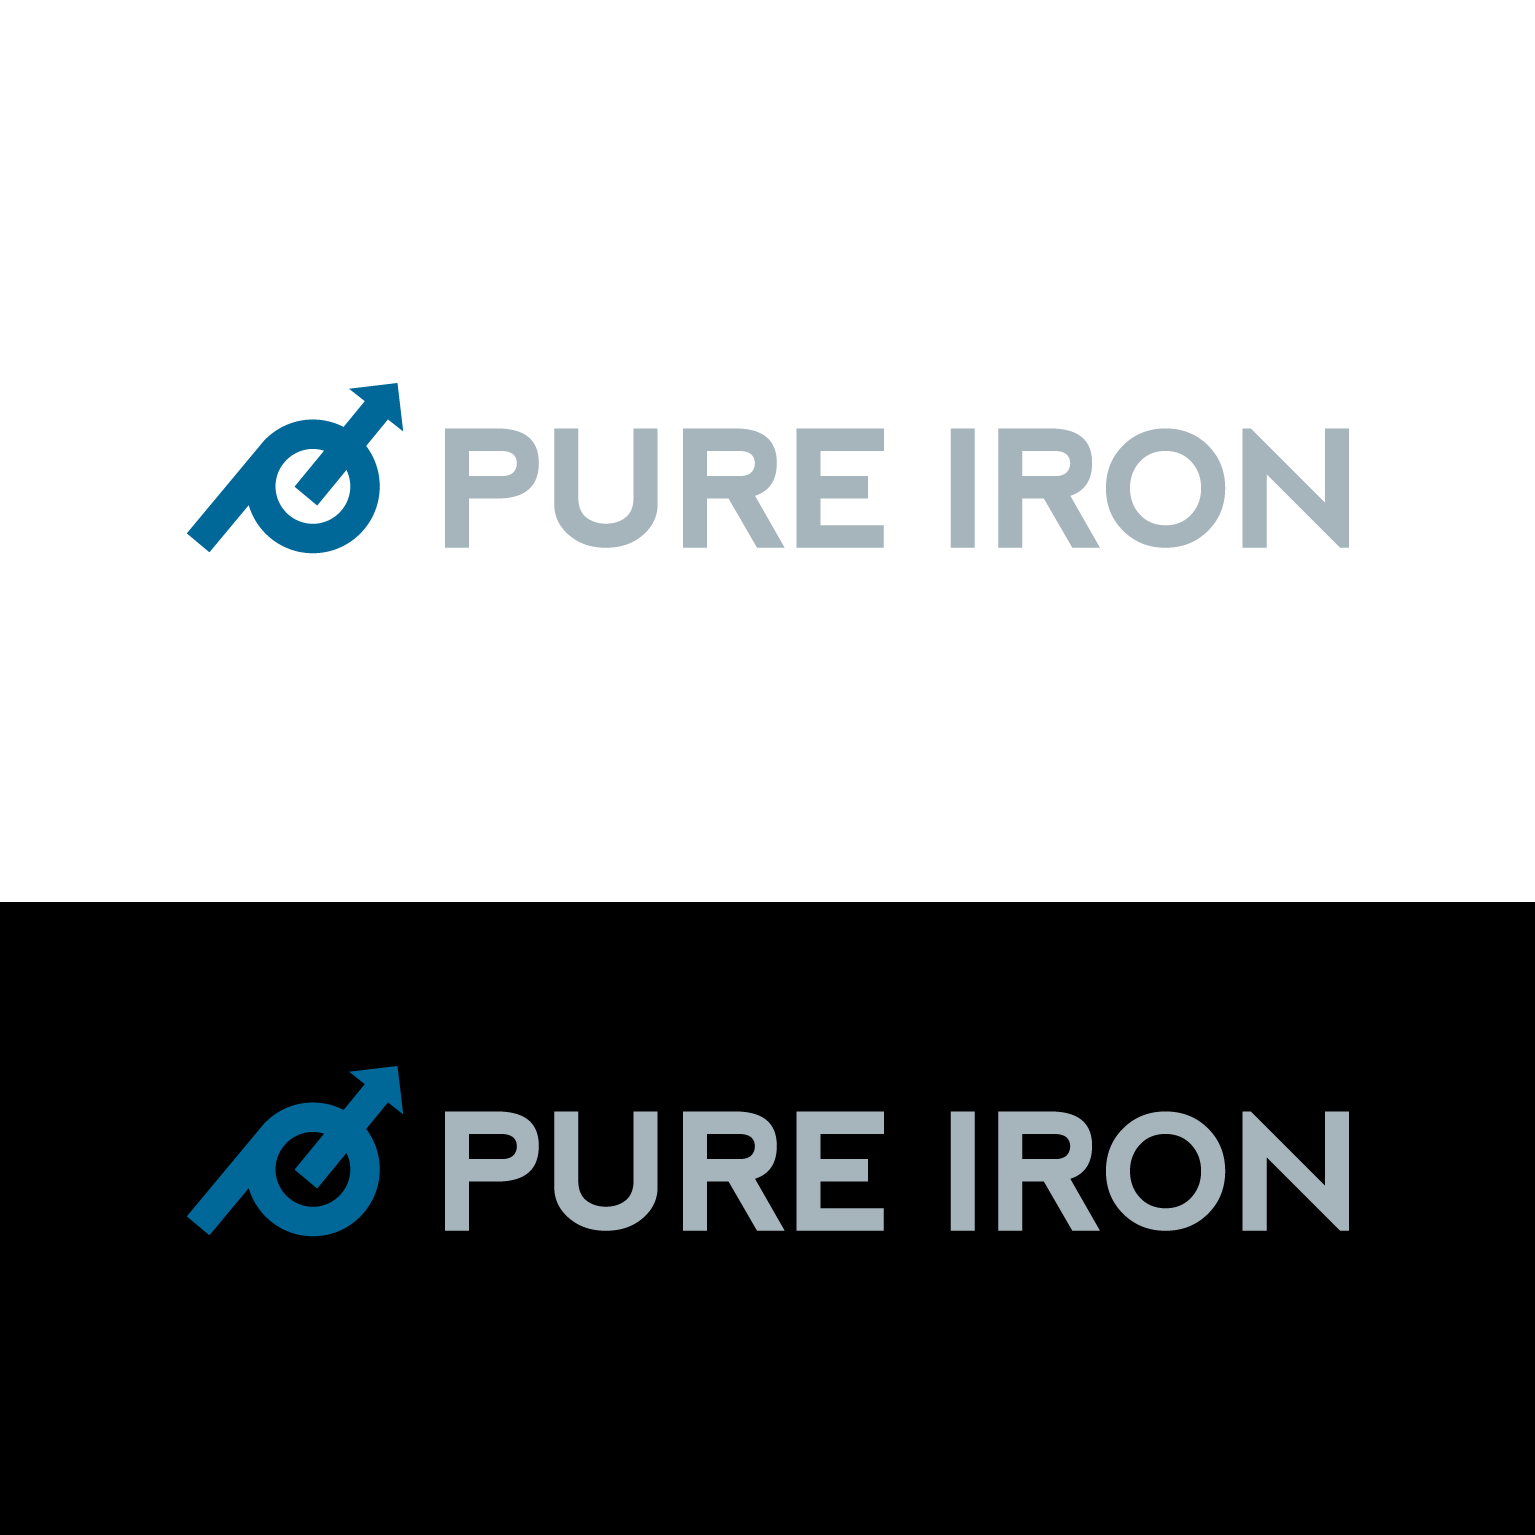 Logo Design by luna - Entry No. 40 in the Logo Design Contest Fun Logo Design for Pure Iron.